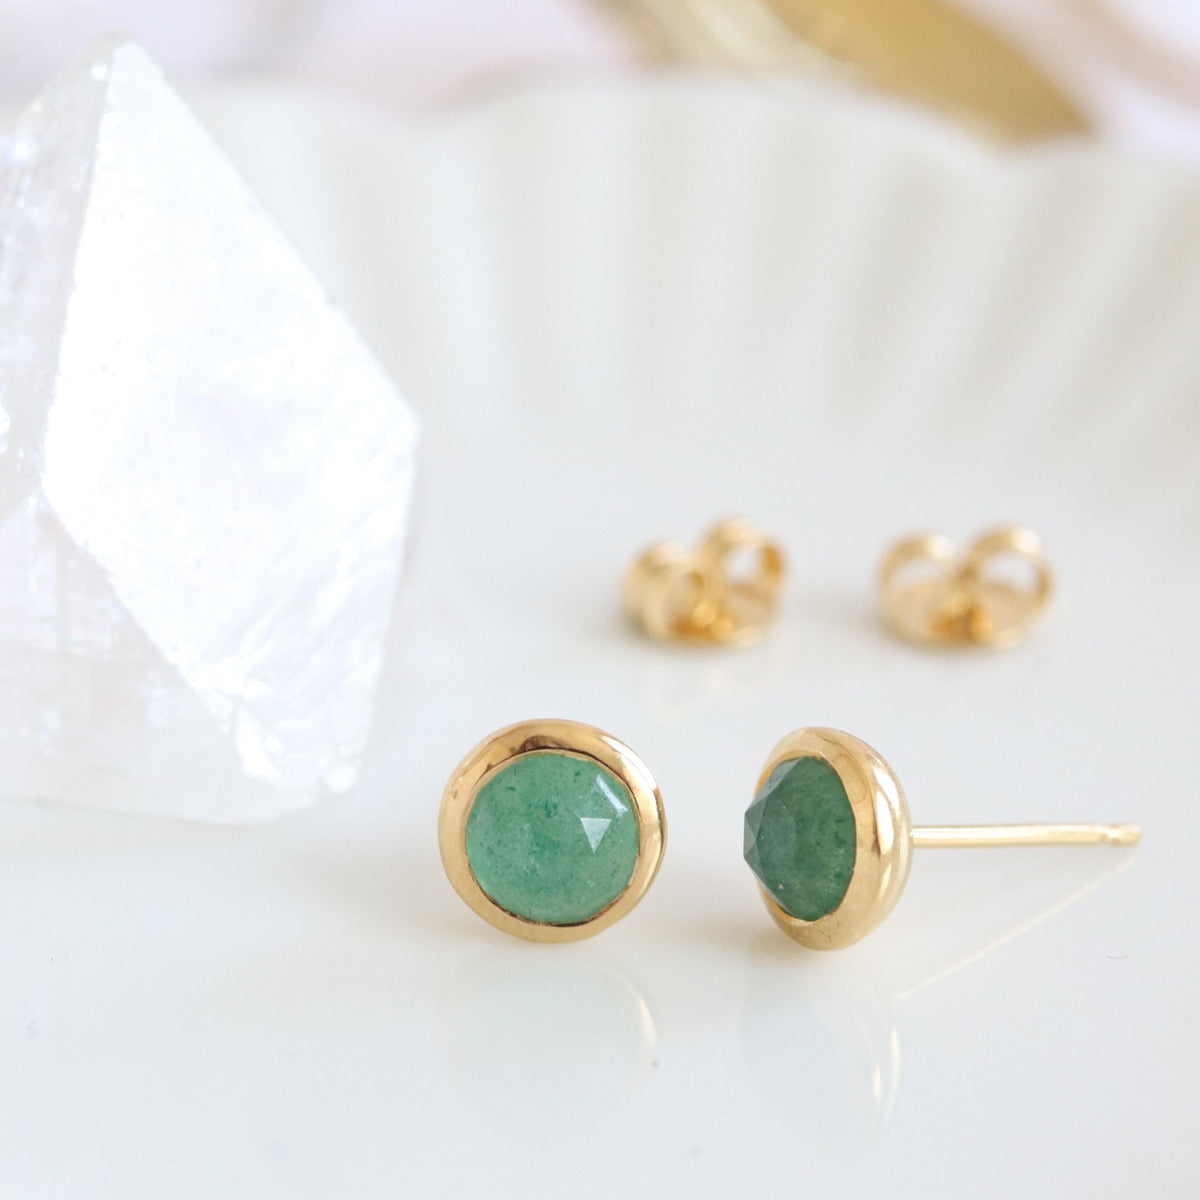 DAINTY LEGACY STUDS - GREEN QUARTZ & GOLD - SO PRETTY CARA COTTER